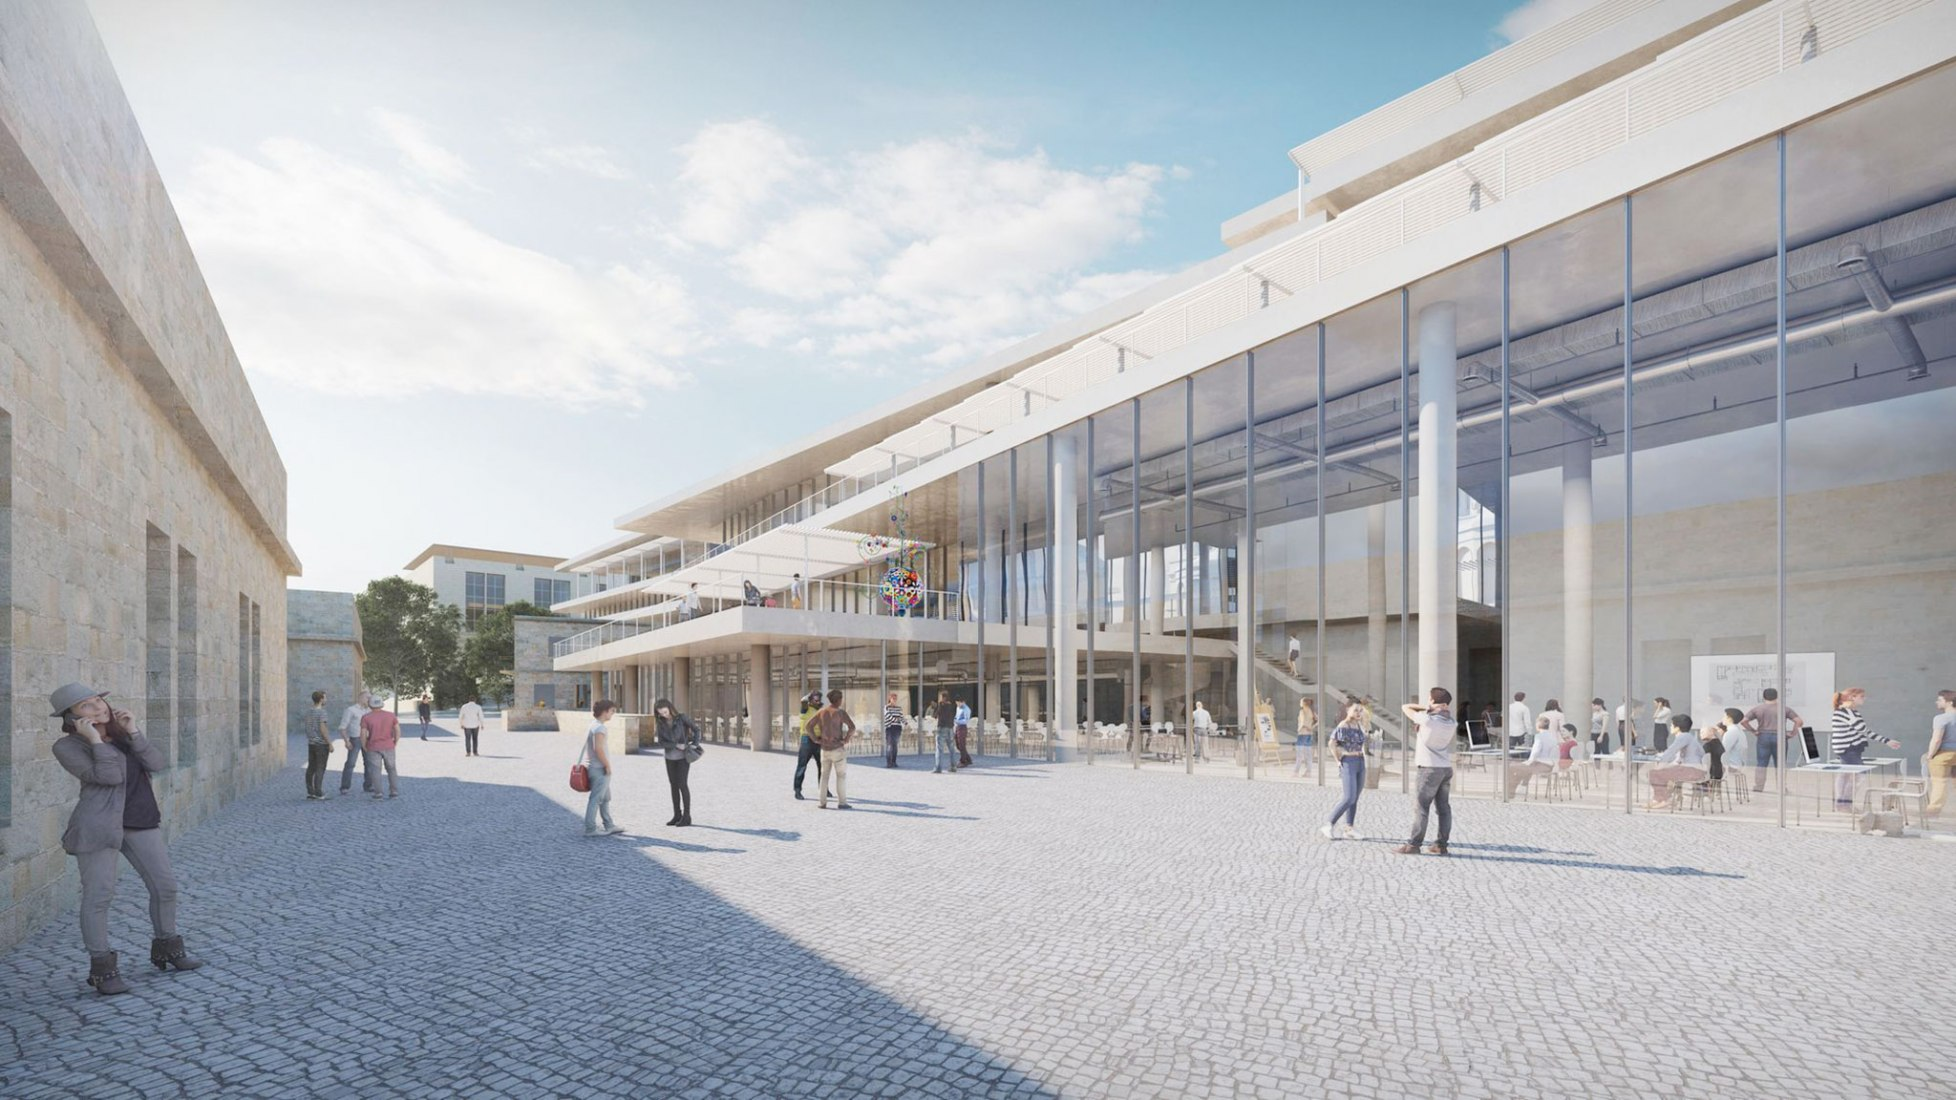 Rendering. Bezalel Academy of Art and Design. Image Courtesy of SANAA